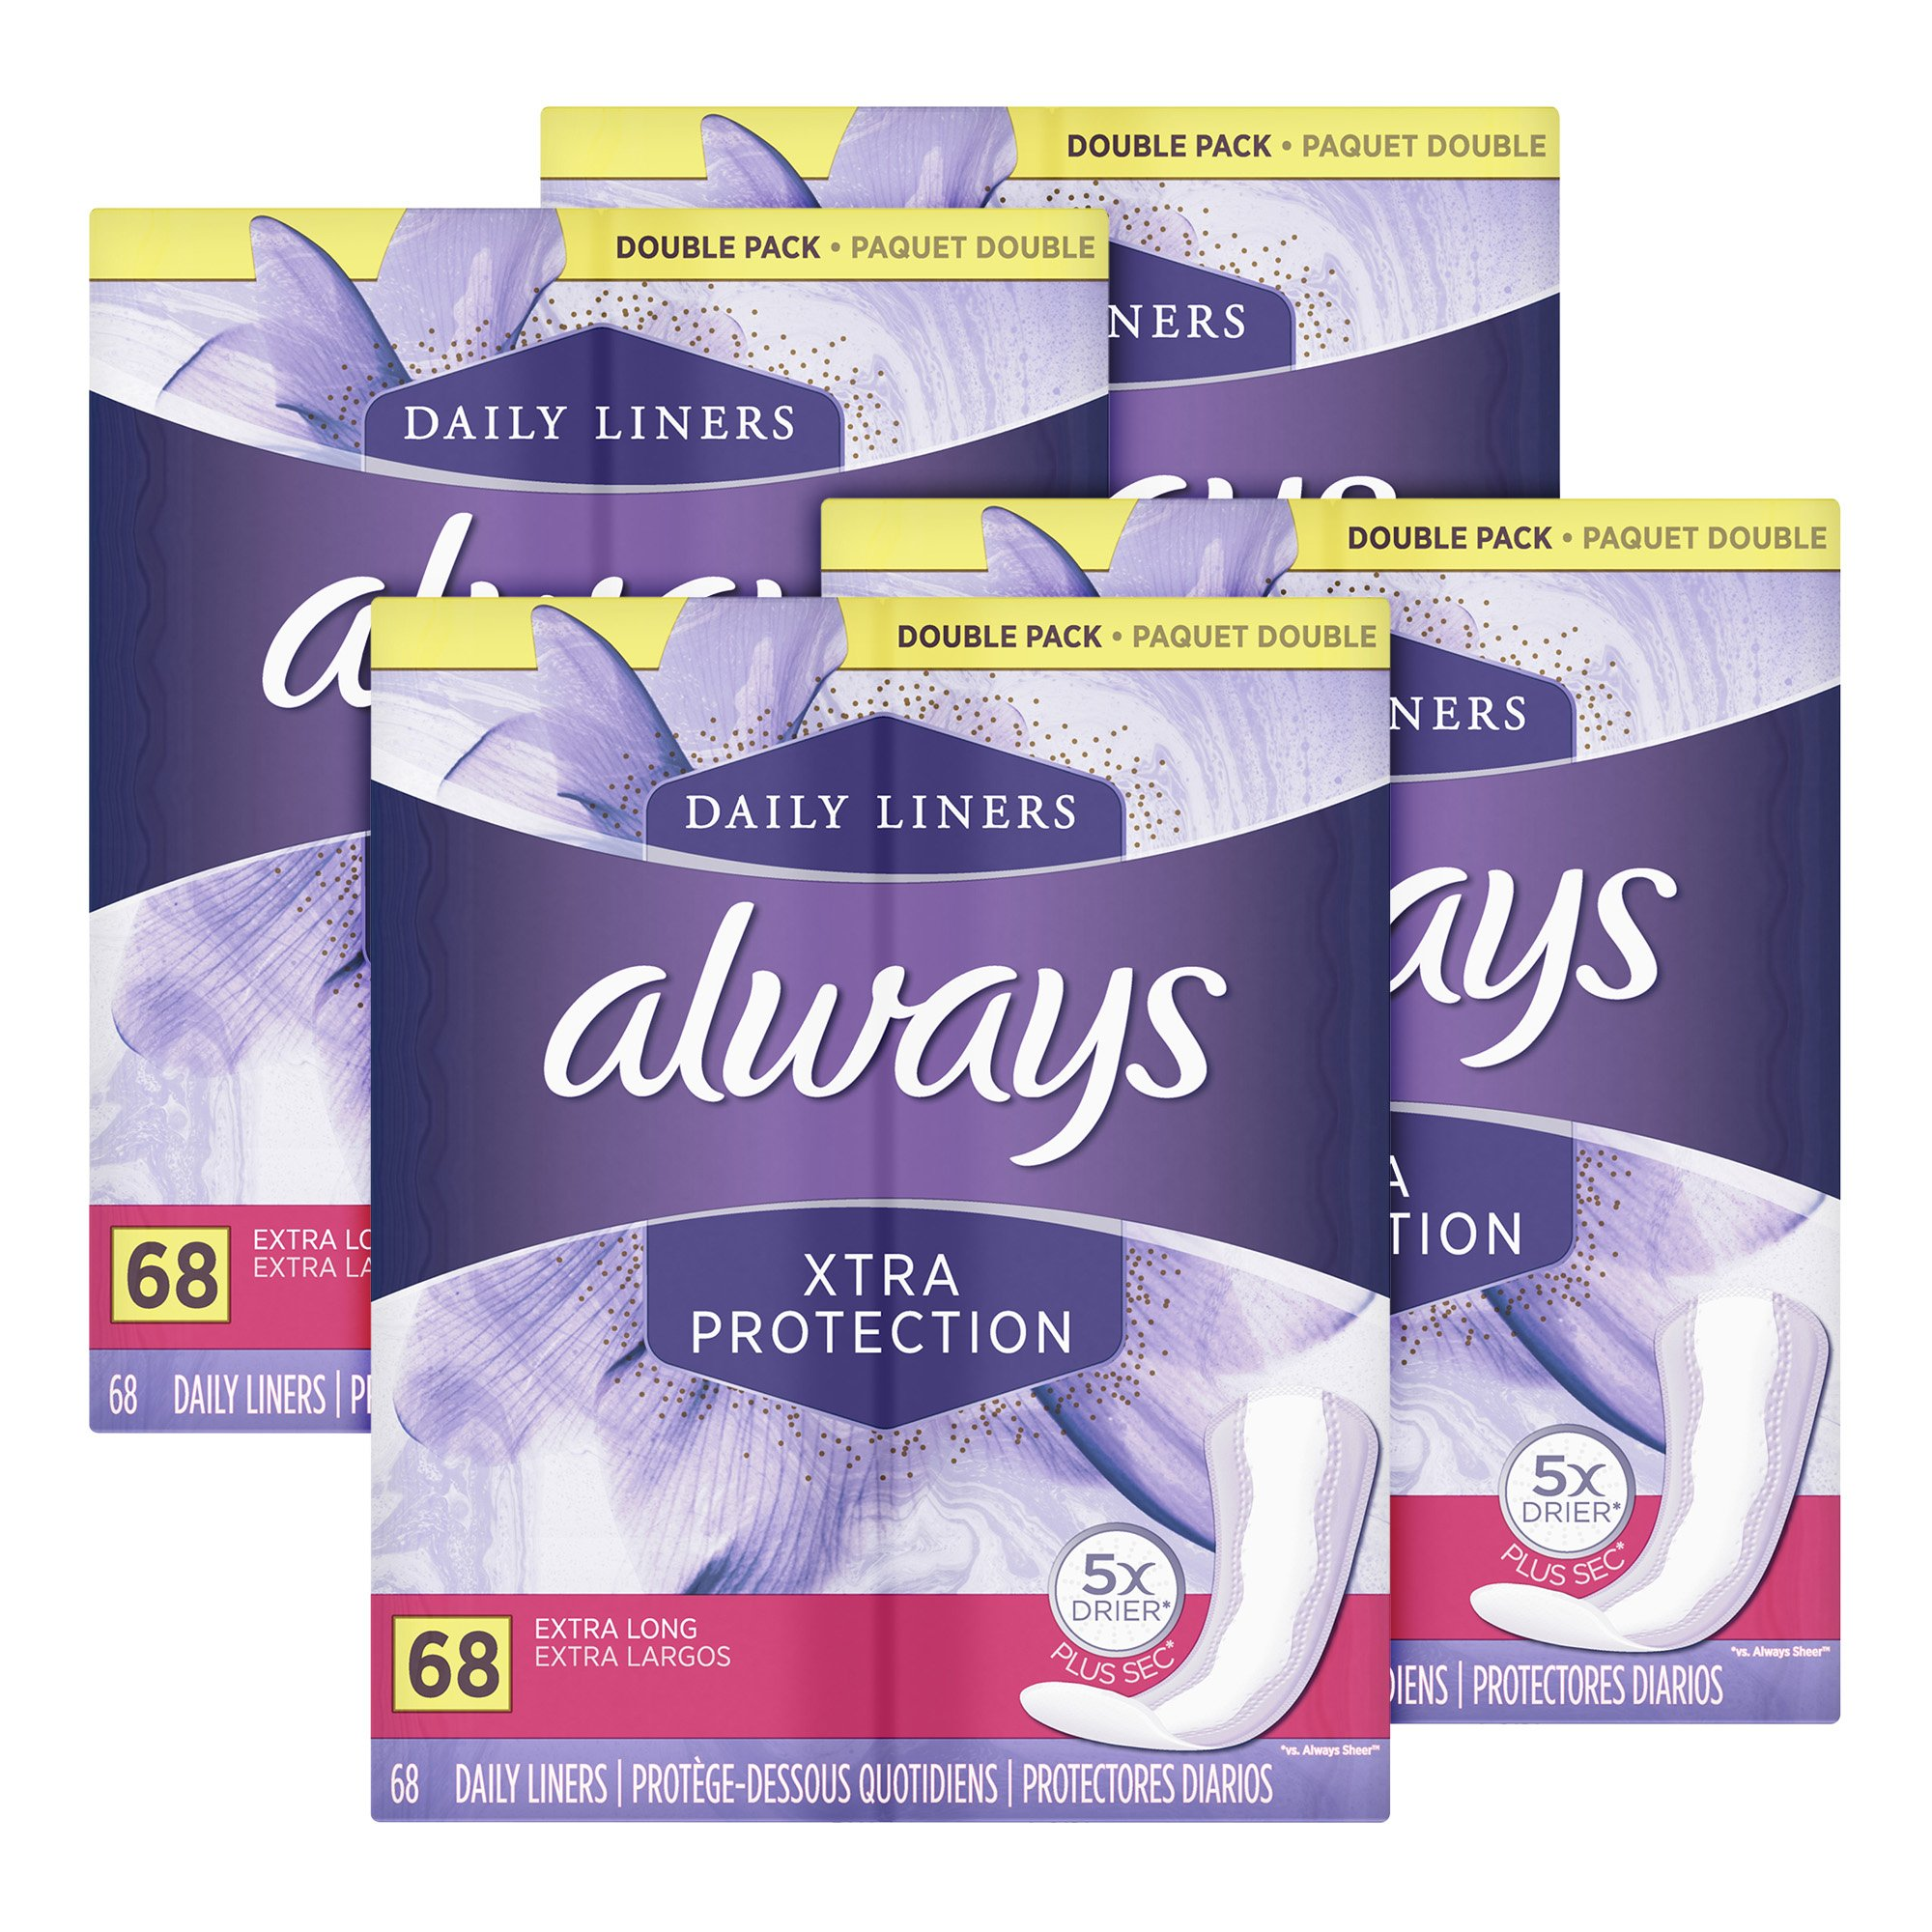 Always Xtra Protection Daily Liners, Extra Long Feminine Panty Liners, 68 Count - Pack of 4 (272 Total Count)